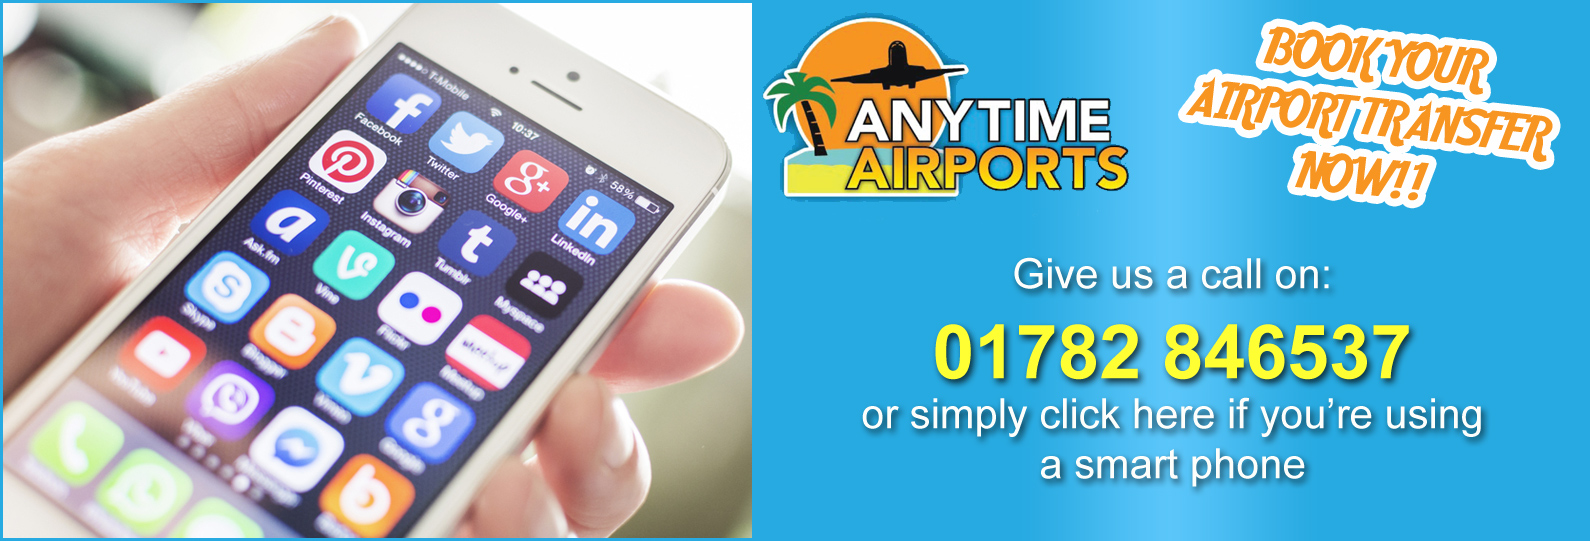 call anytime airports